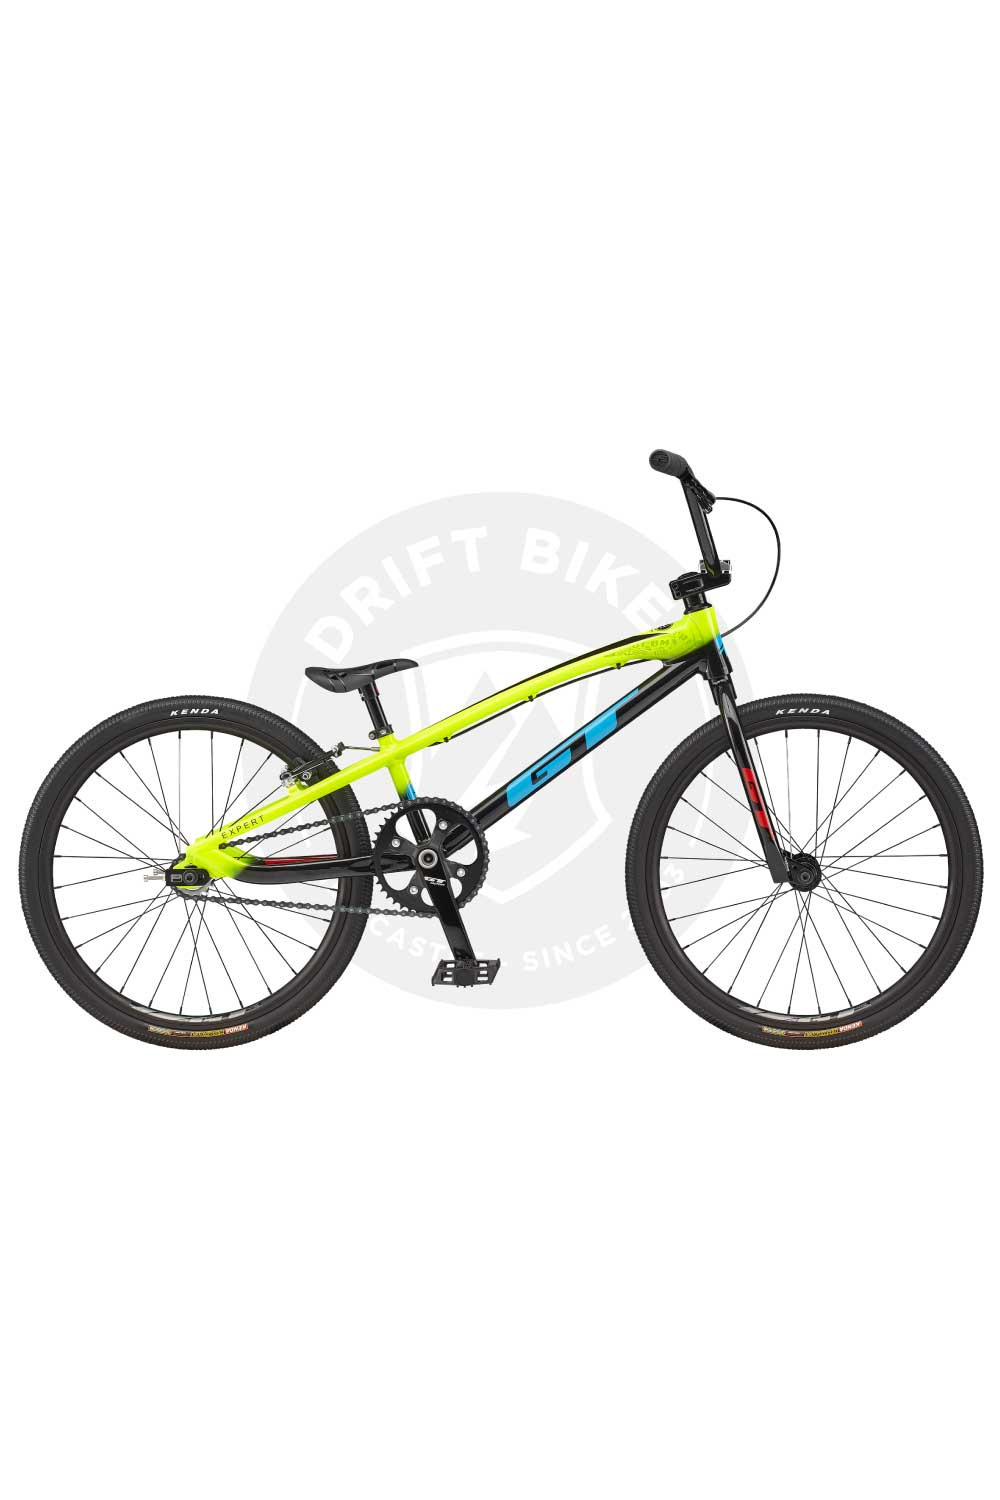 GT Bicycles 2021 Speed Series BMX Race Bike